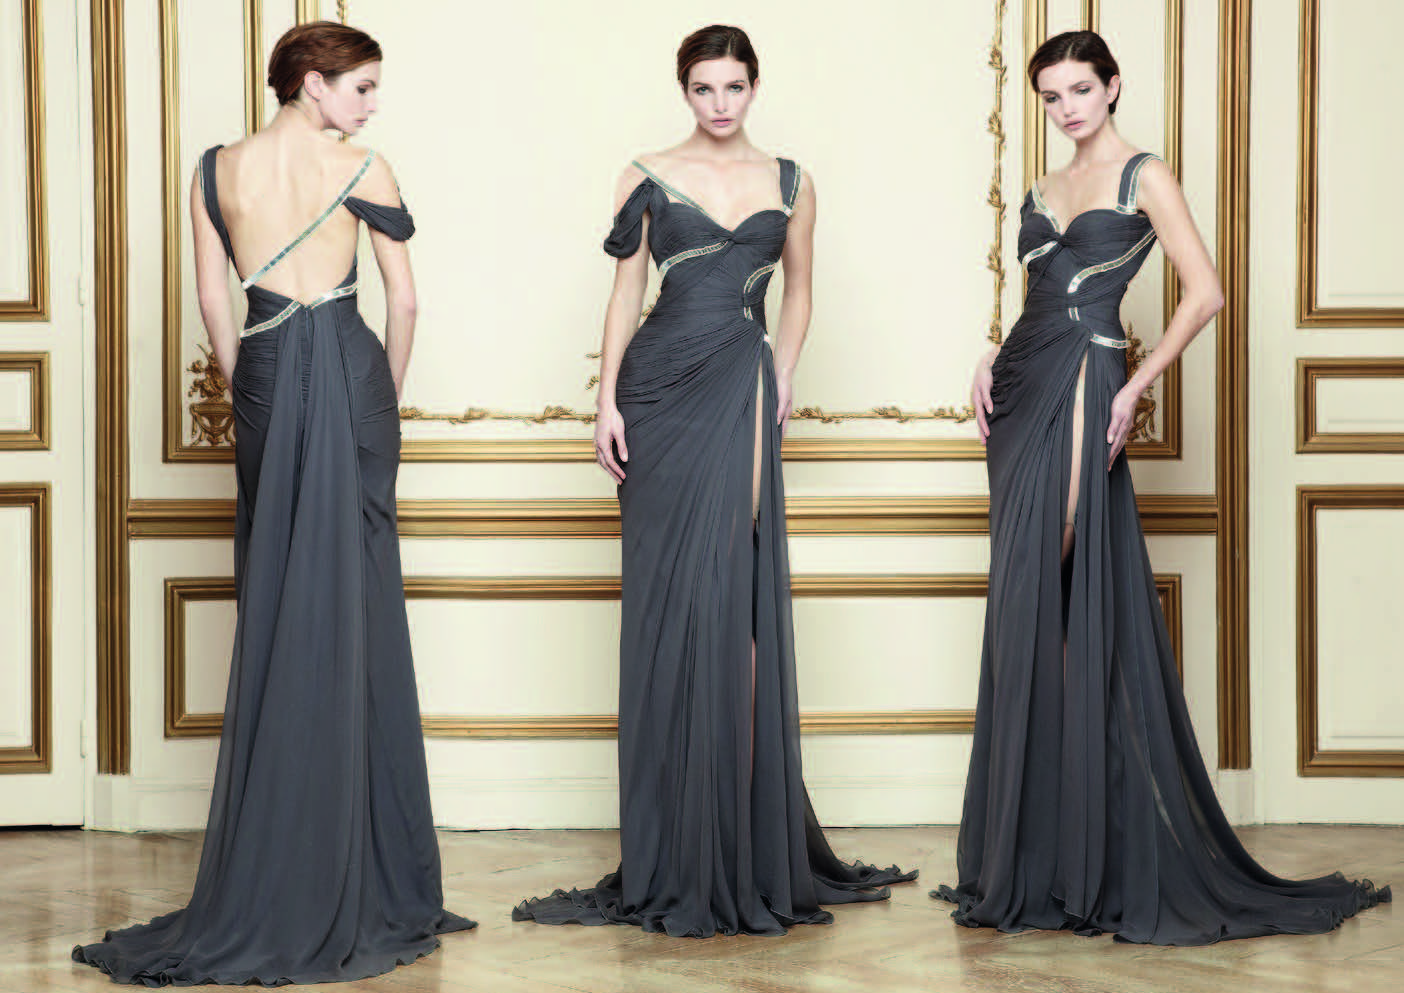 Diva Design: Glamorous Evening Dresses For Your Special Date